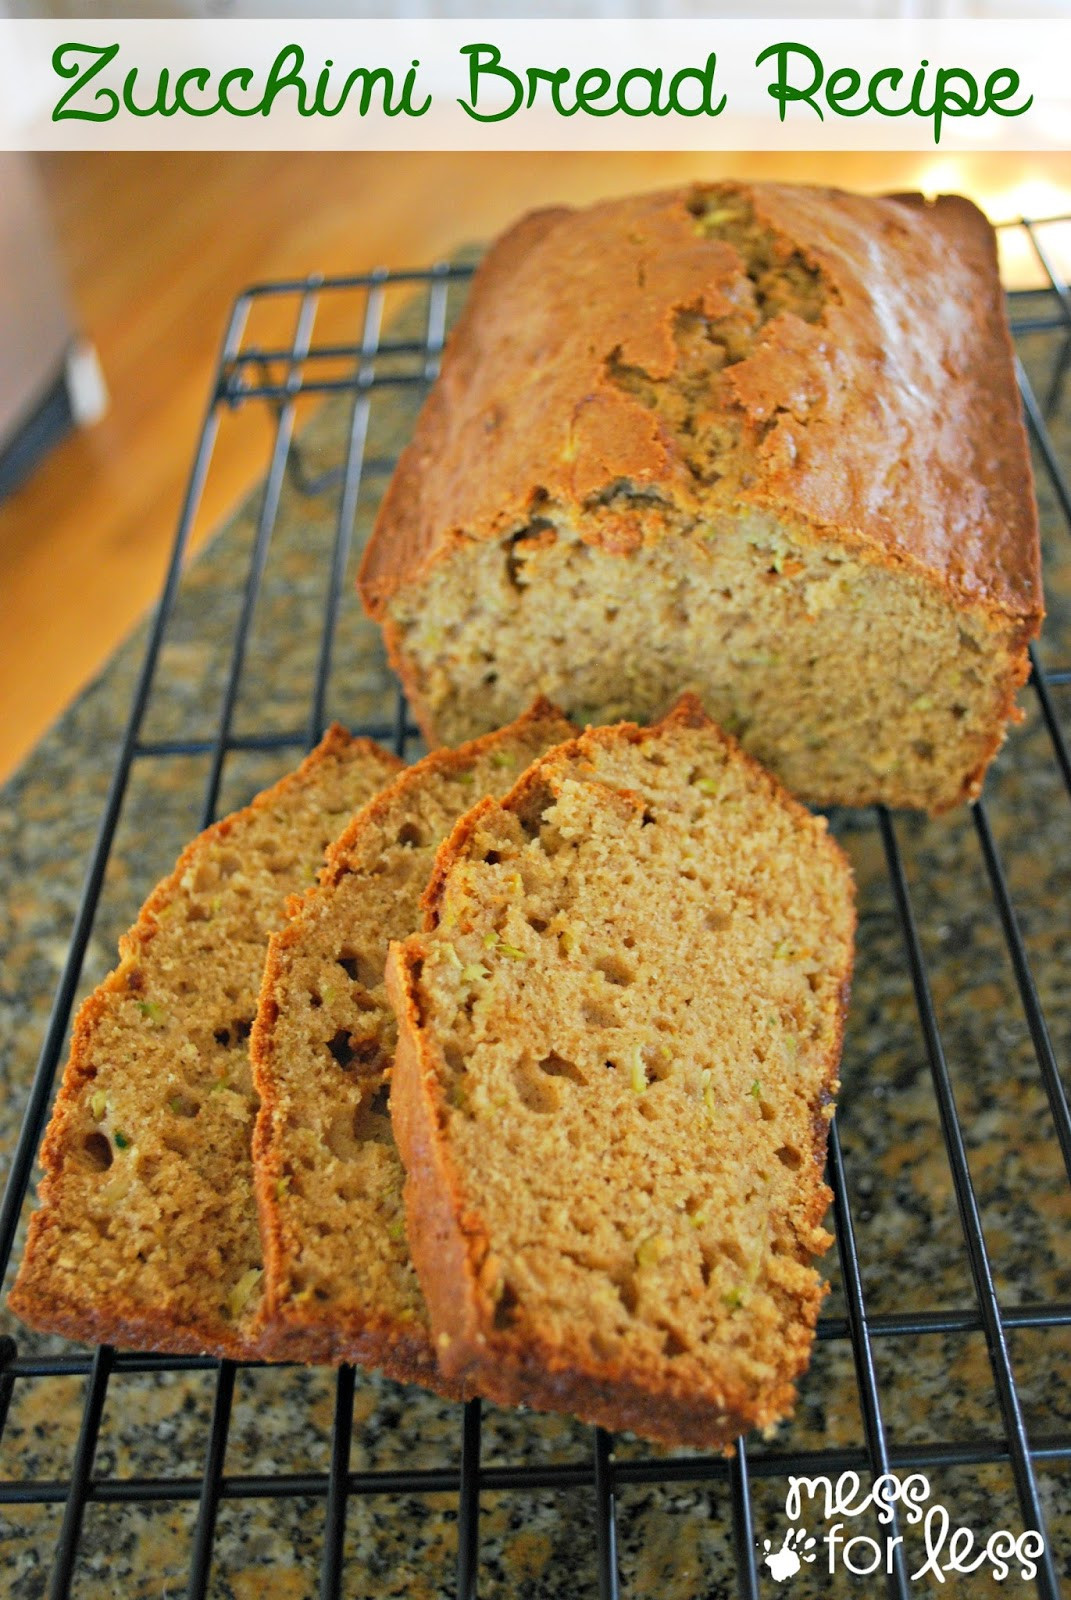 Healthy Zucchini Bread Recipes  Treat Yourself to a Savory Bread Recipe and a few Sweet